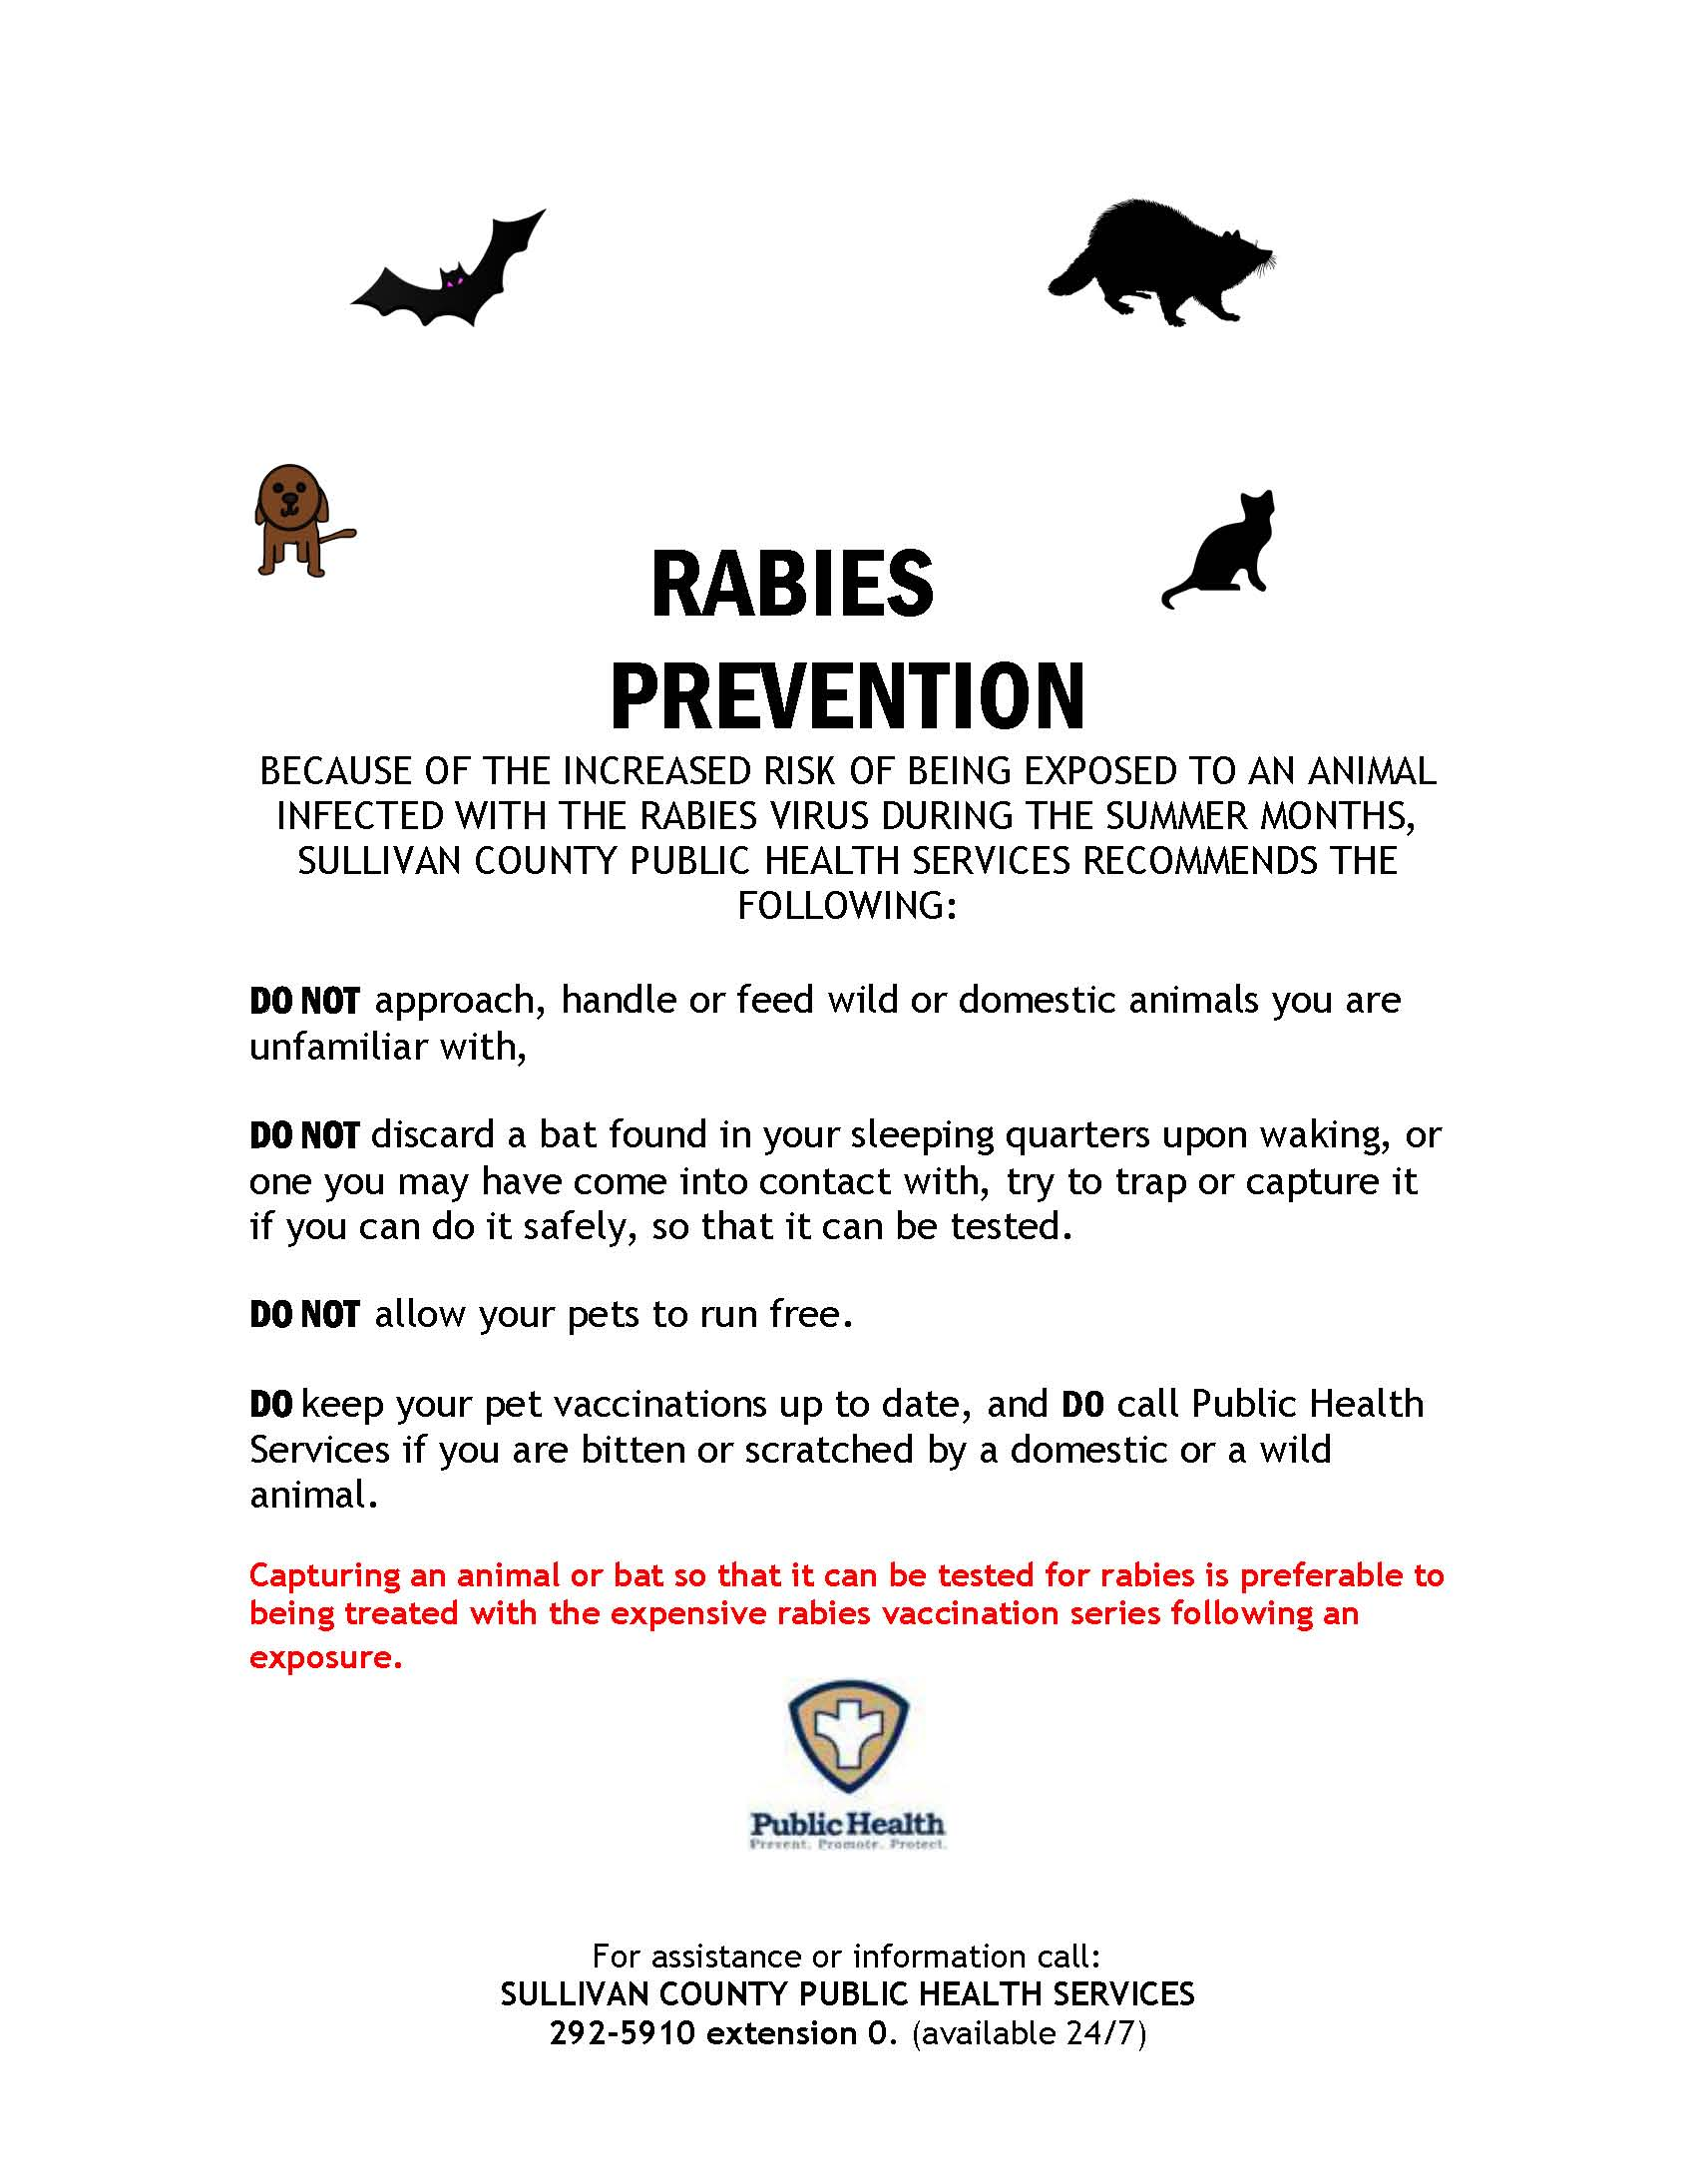 RABIES PREVENTION FLYER